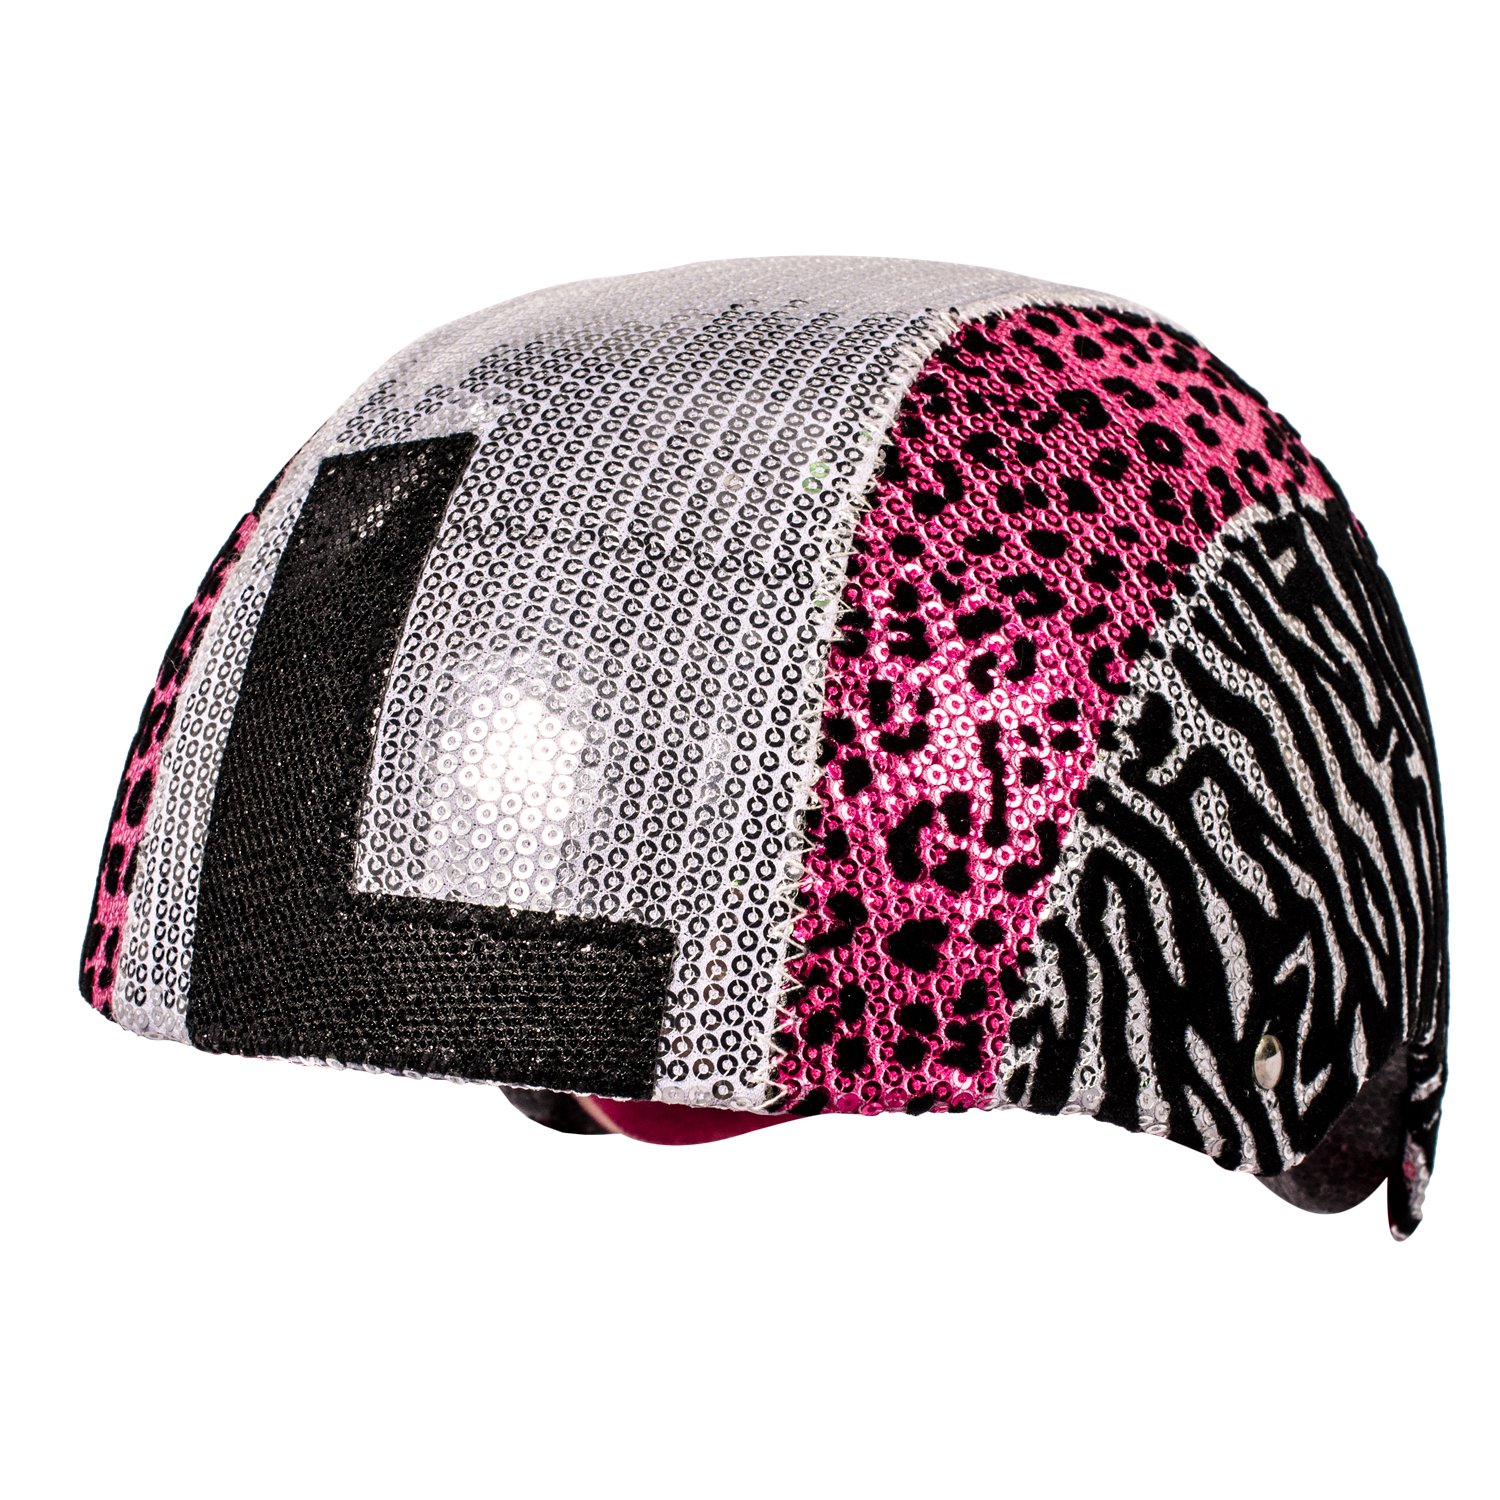 Raskullz Glam Gear Kids Bike Helmet Sequins Zebra Pink Leopard Print for Cycling, One Size